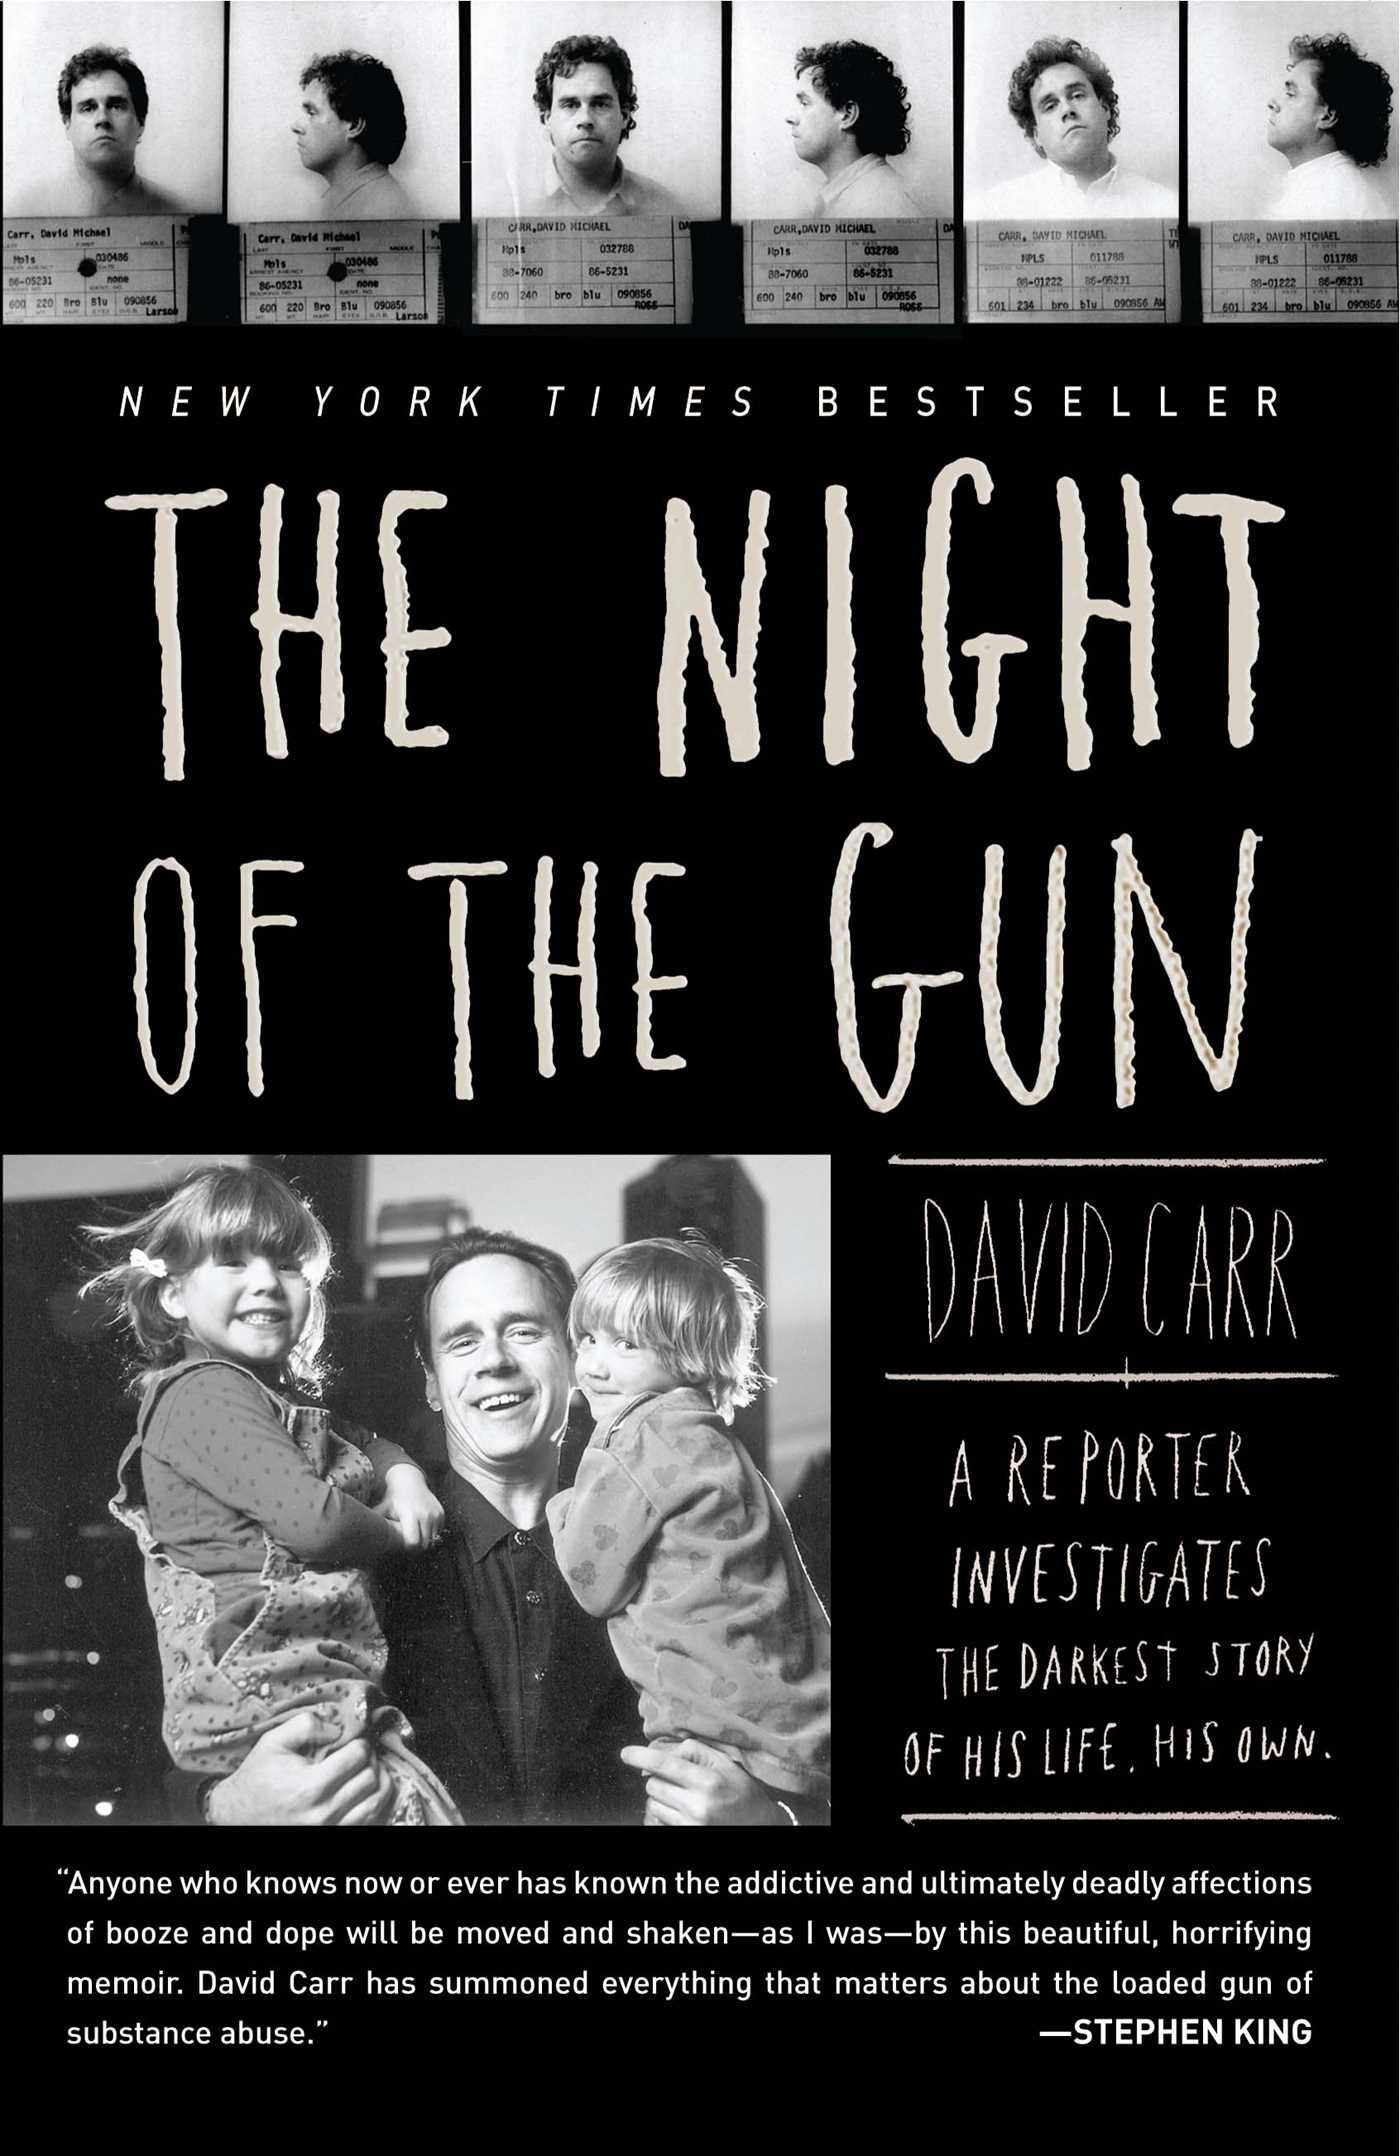 Book Cover Image (jpg): The Night of the Gun